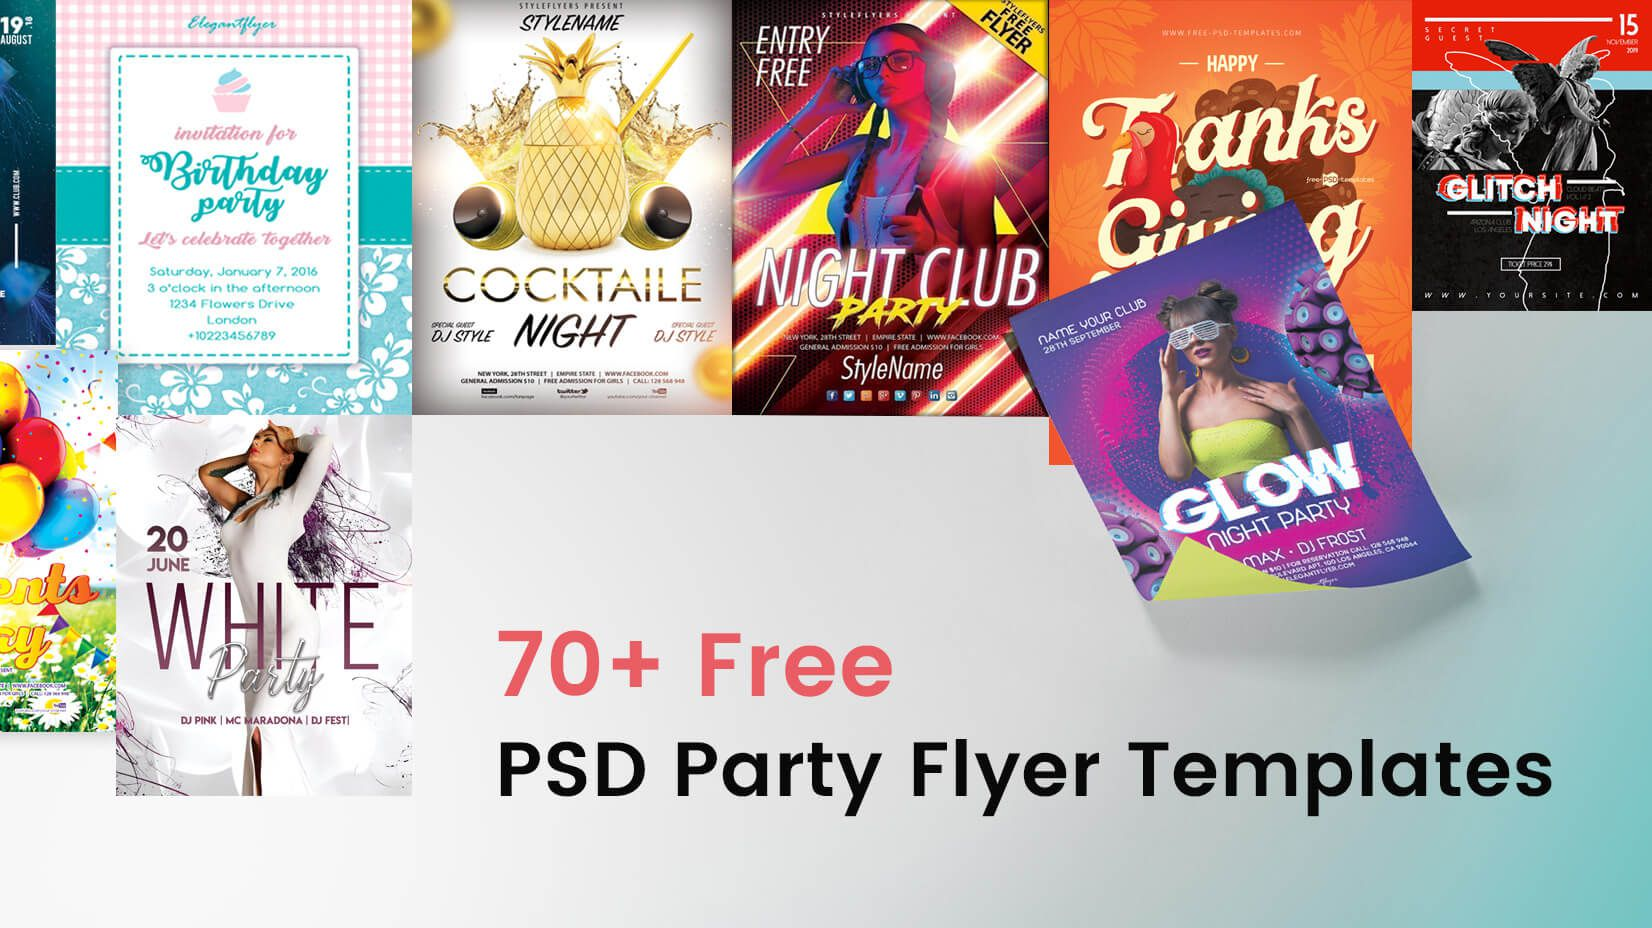 008 Awful Free Party Flyer Psd Template Download Concept  - Neon GlowFull